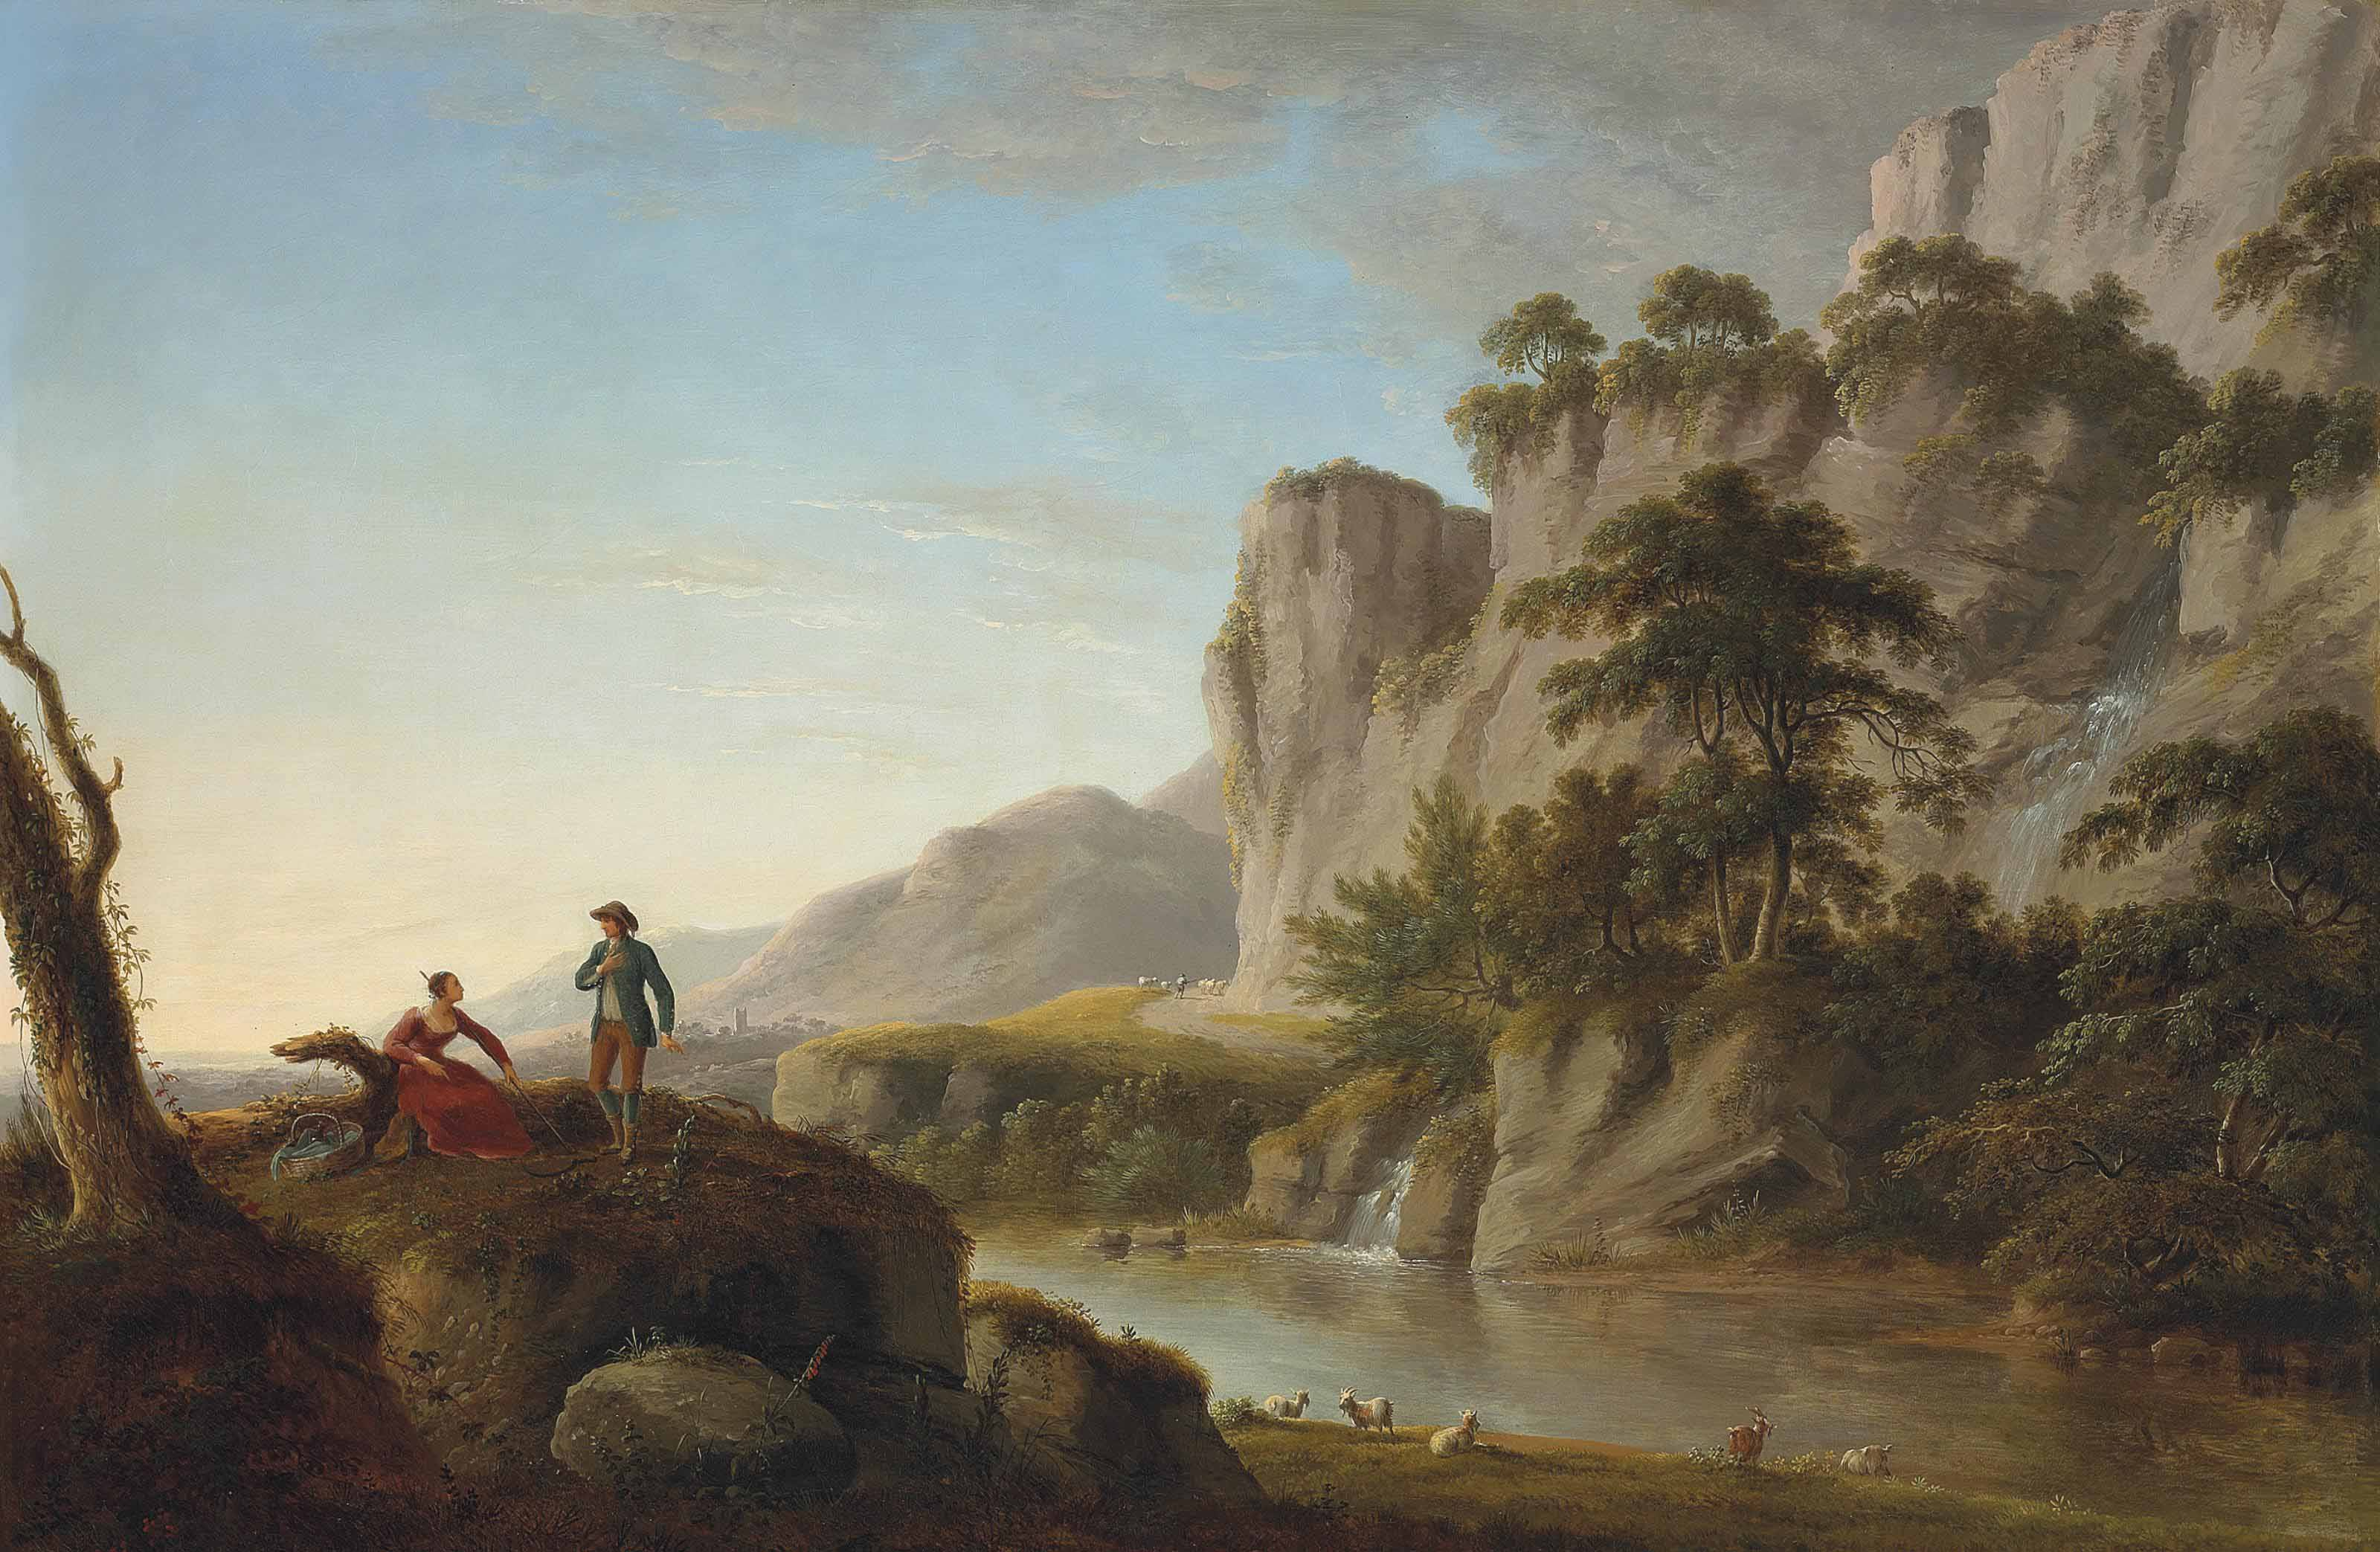 A pastoral river landscape with an elegant couple conversing